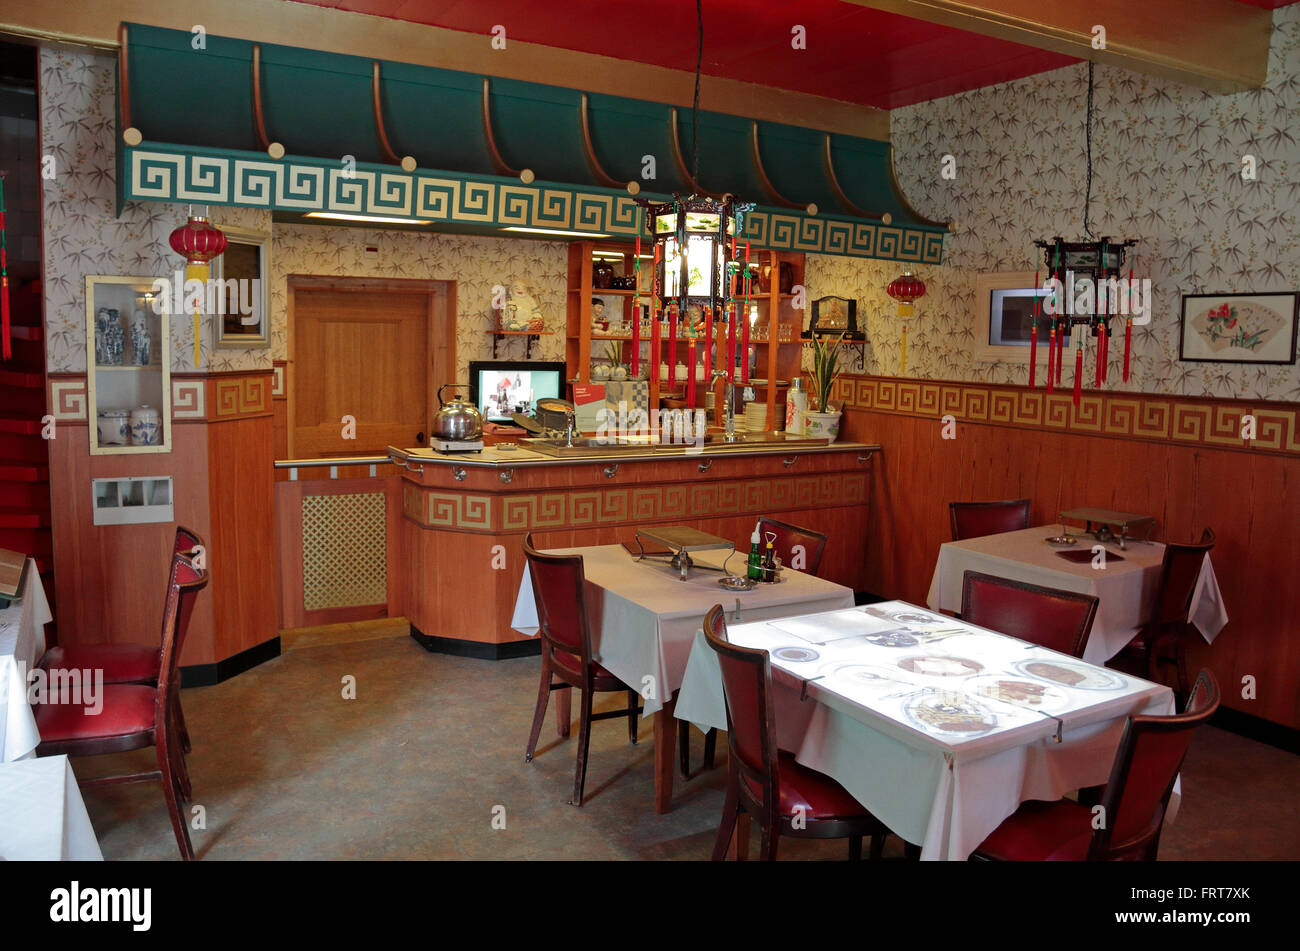 Interior of a 1960 39 s chinese restaurant in the netherlands for Interieur 70 jaren